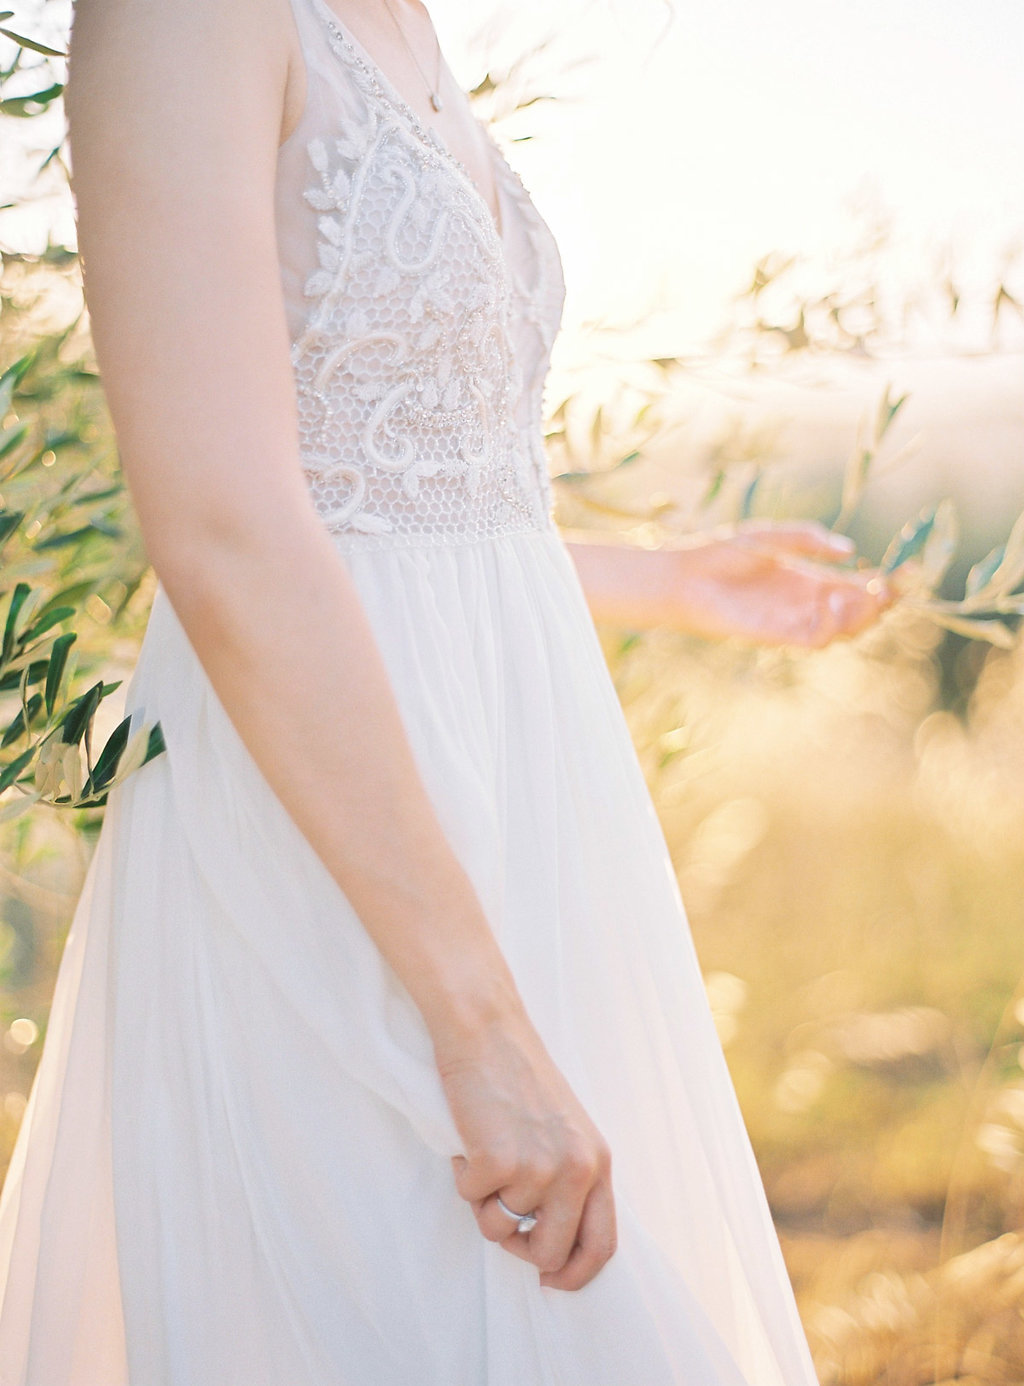 lace wedding dress details - photo by Katie Grant Photography https://ruffledblog.com/classically-beautiful-intimate-wedding-in-tuscany